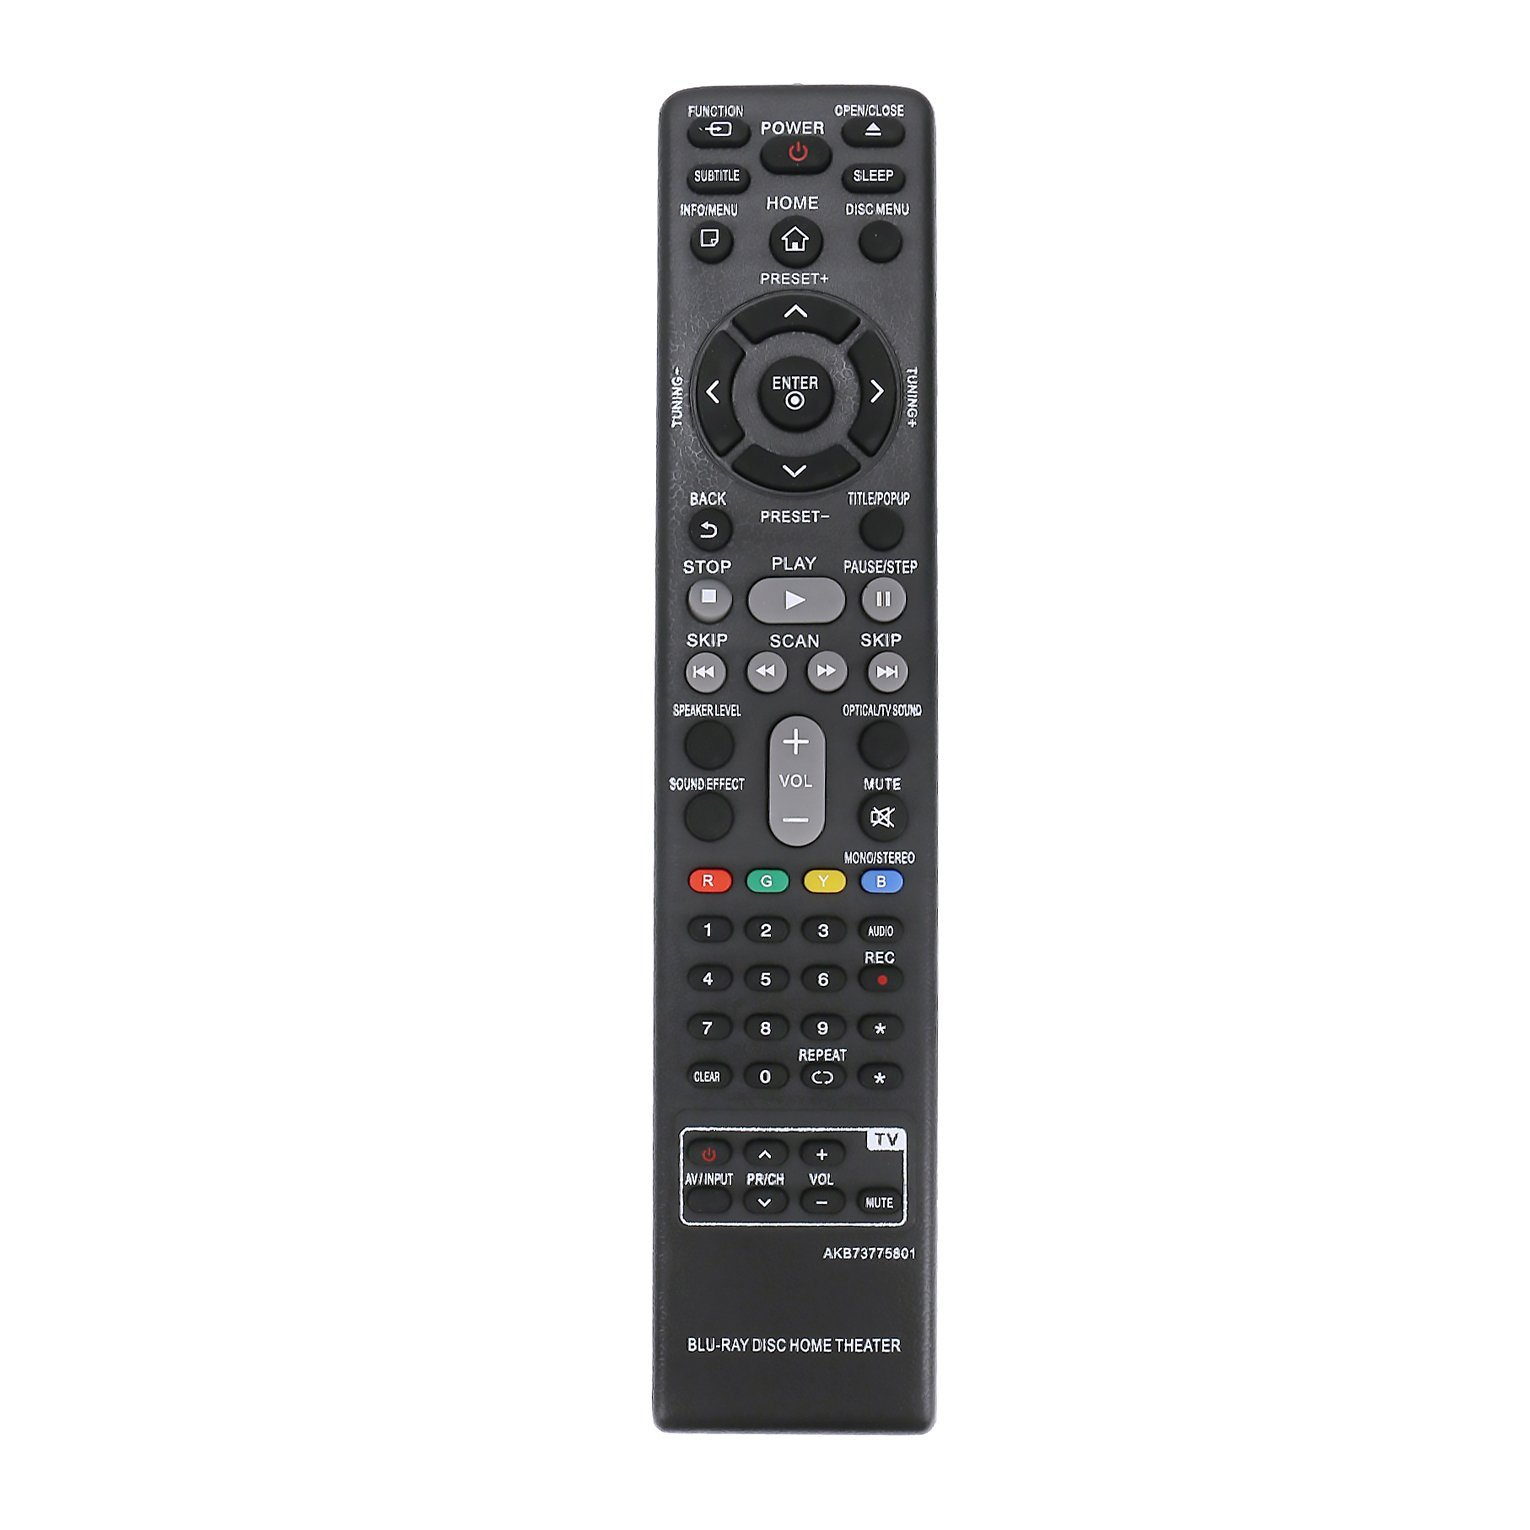 New AKB73775801 Replace Remote Control fit for LG Blu-Ray Home Theater System BH4030S BH4530T BH5540T BH6540T LHB655 S43S1-W S54T1-S S63T1-W S64H1-W.